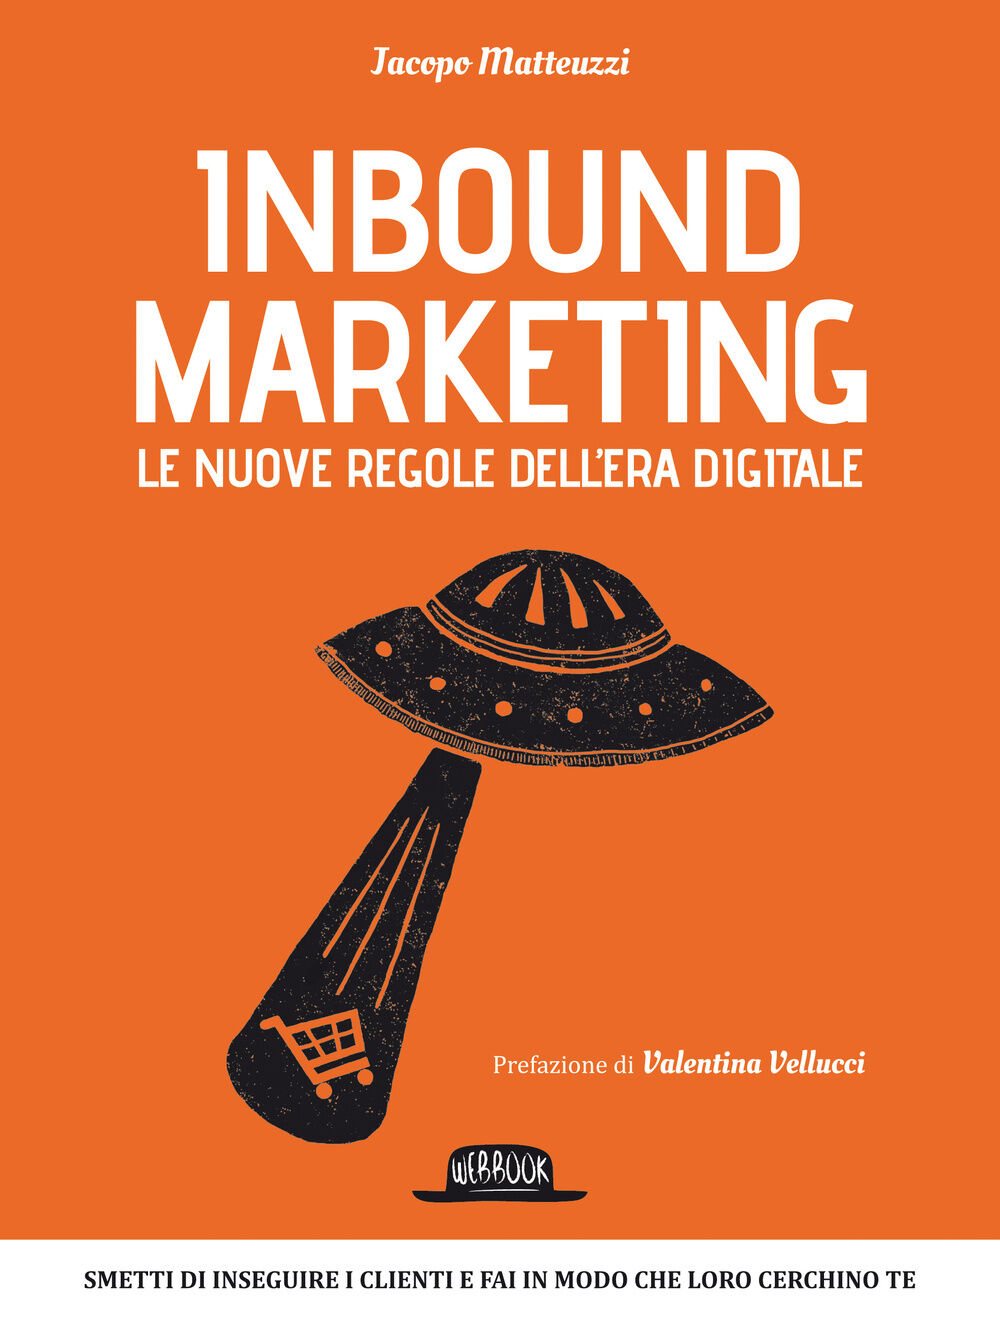 Inbound marketing. Le nuove regole dell'era digitale